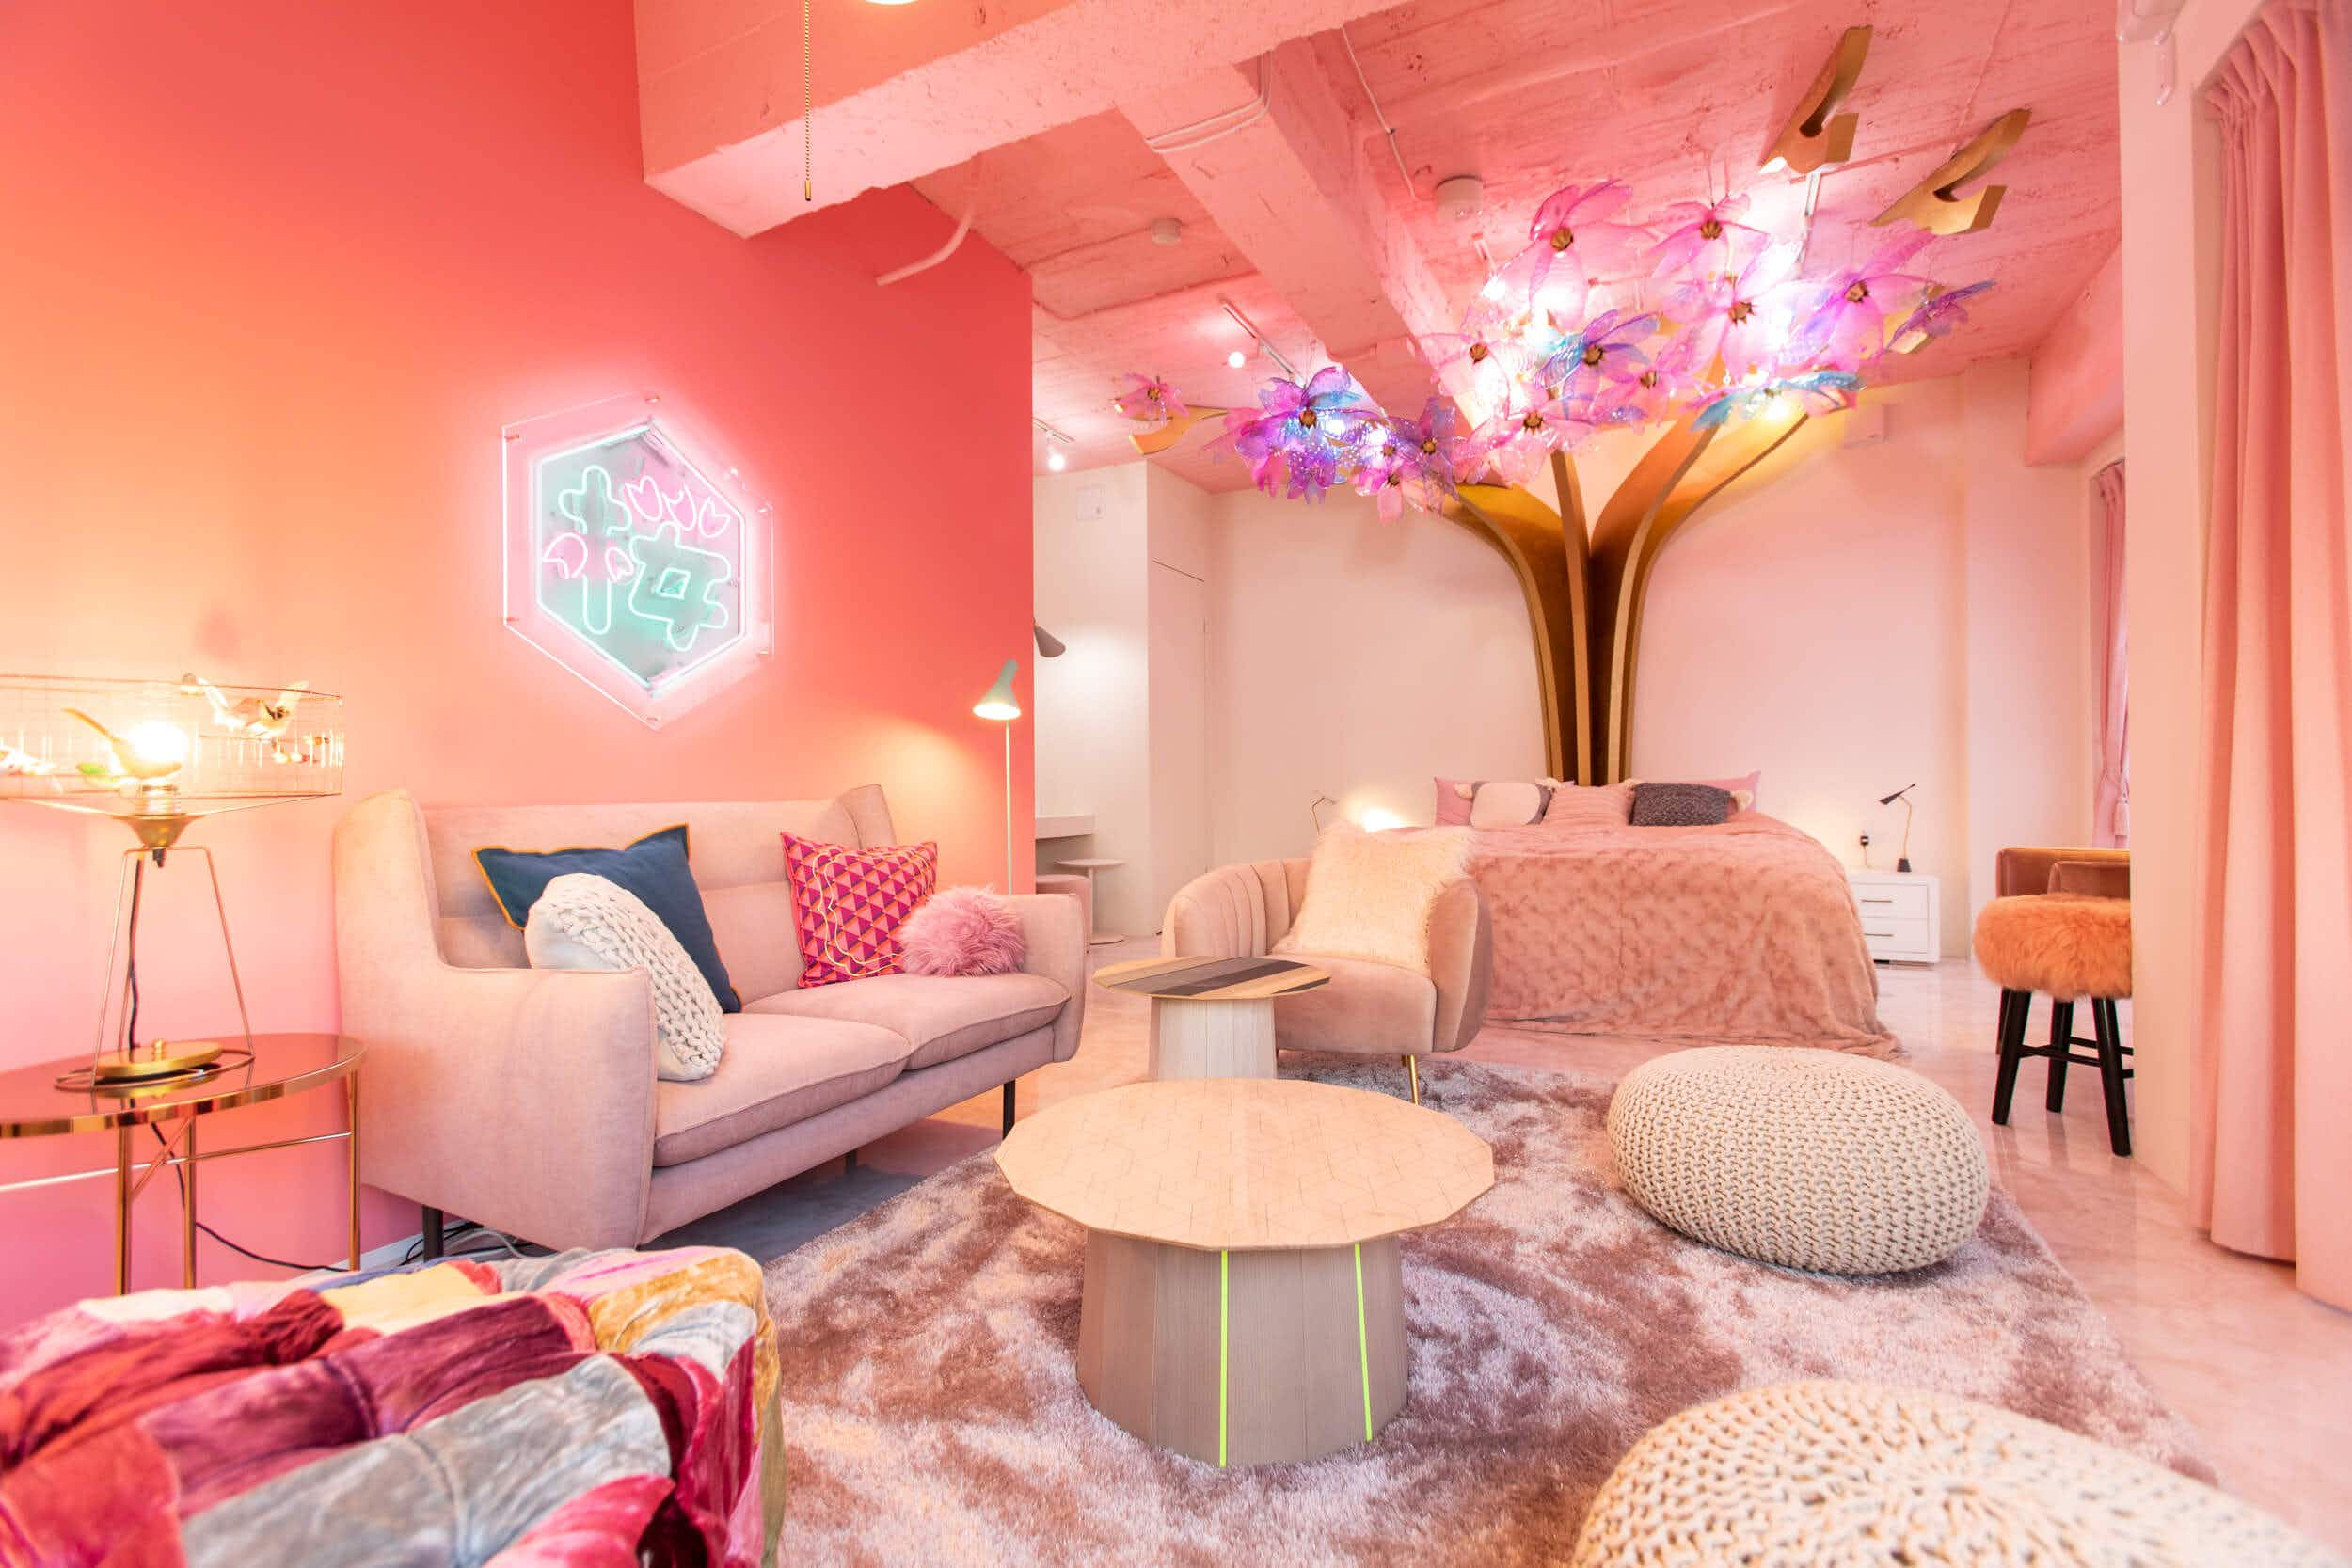 pop art bedroom decor online information.htm how 2018 became the year of the bubble hotel lonely planet  bubble hotel